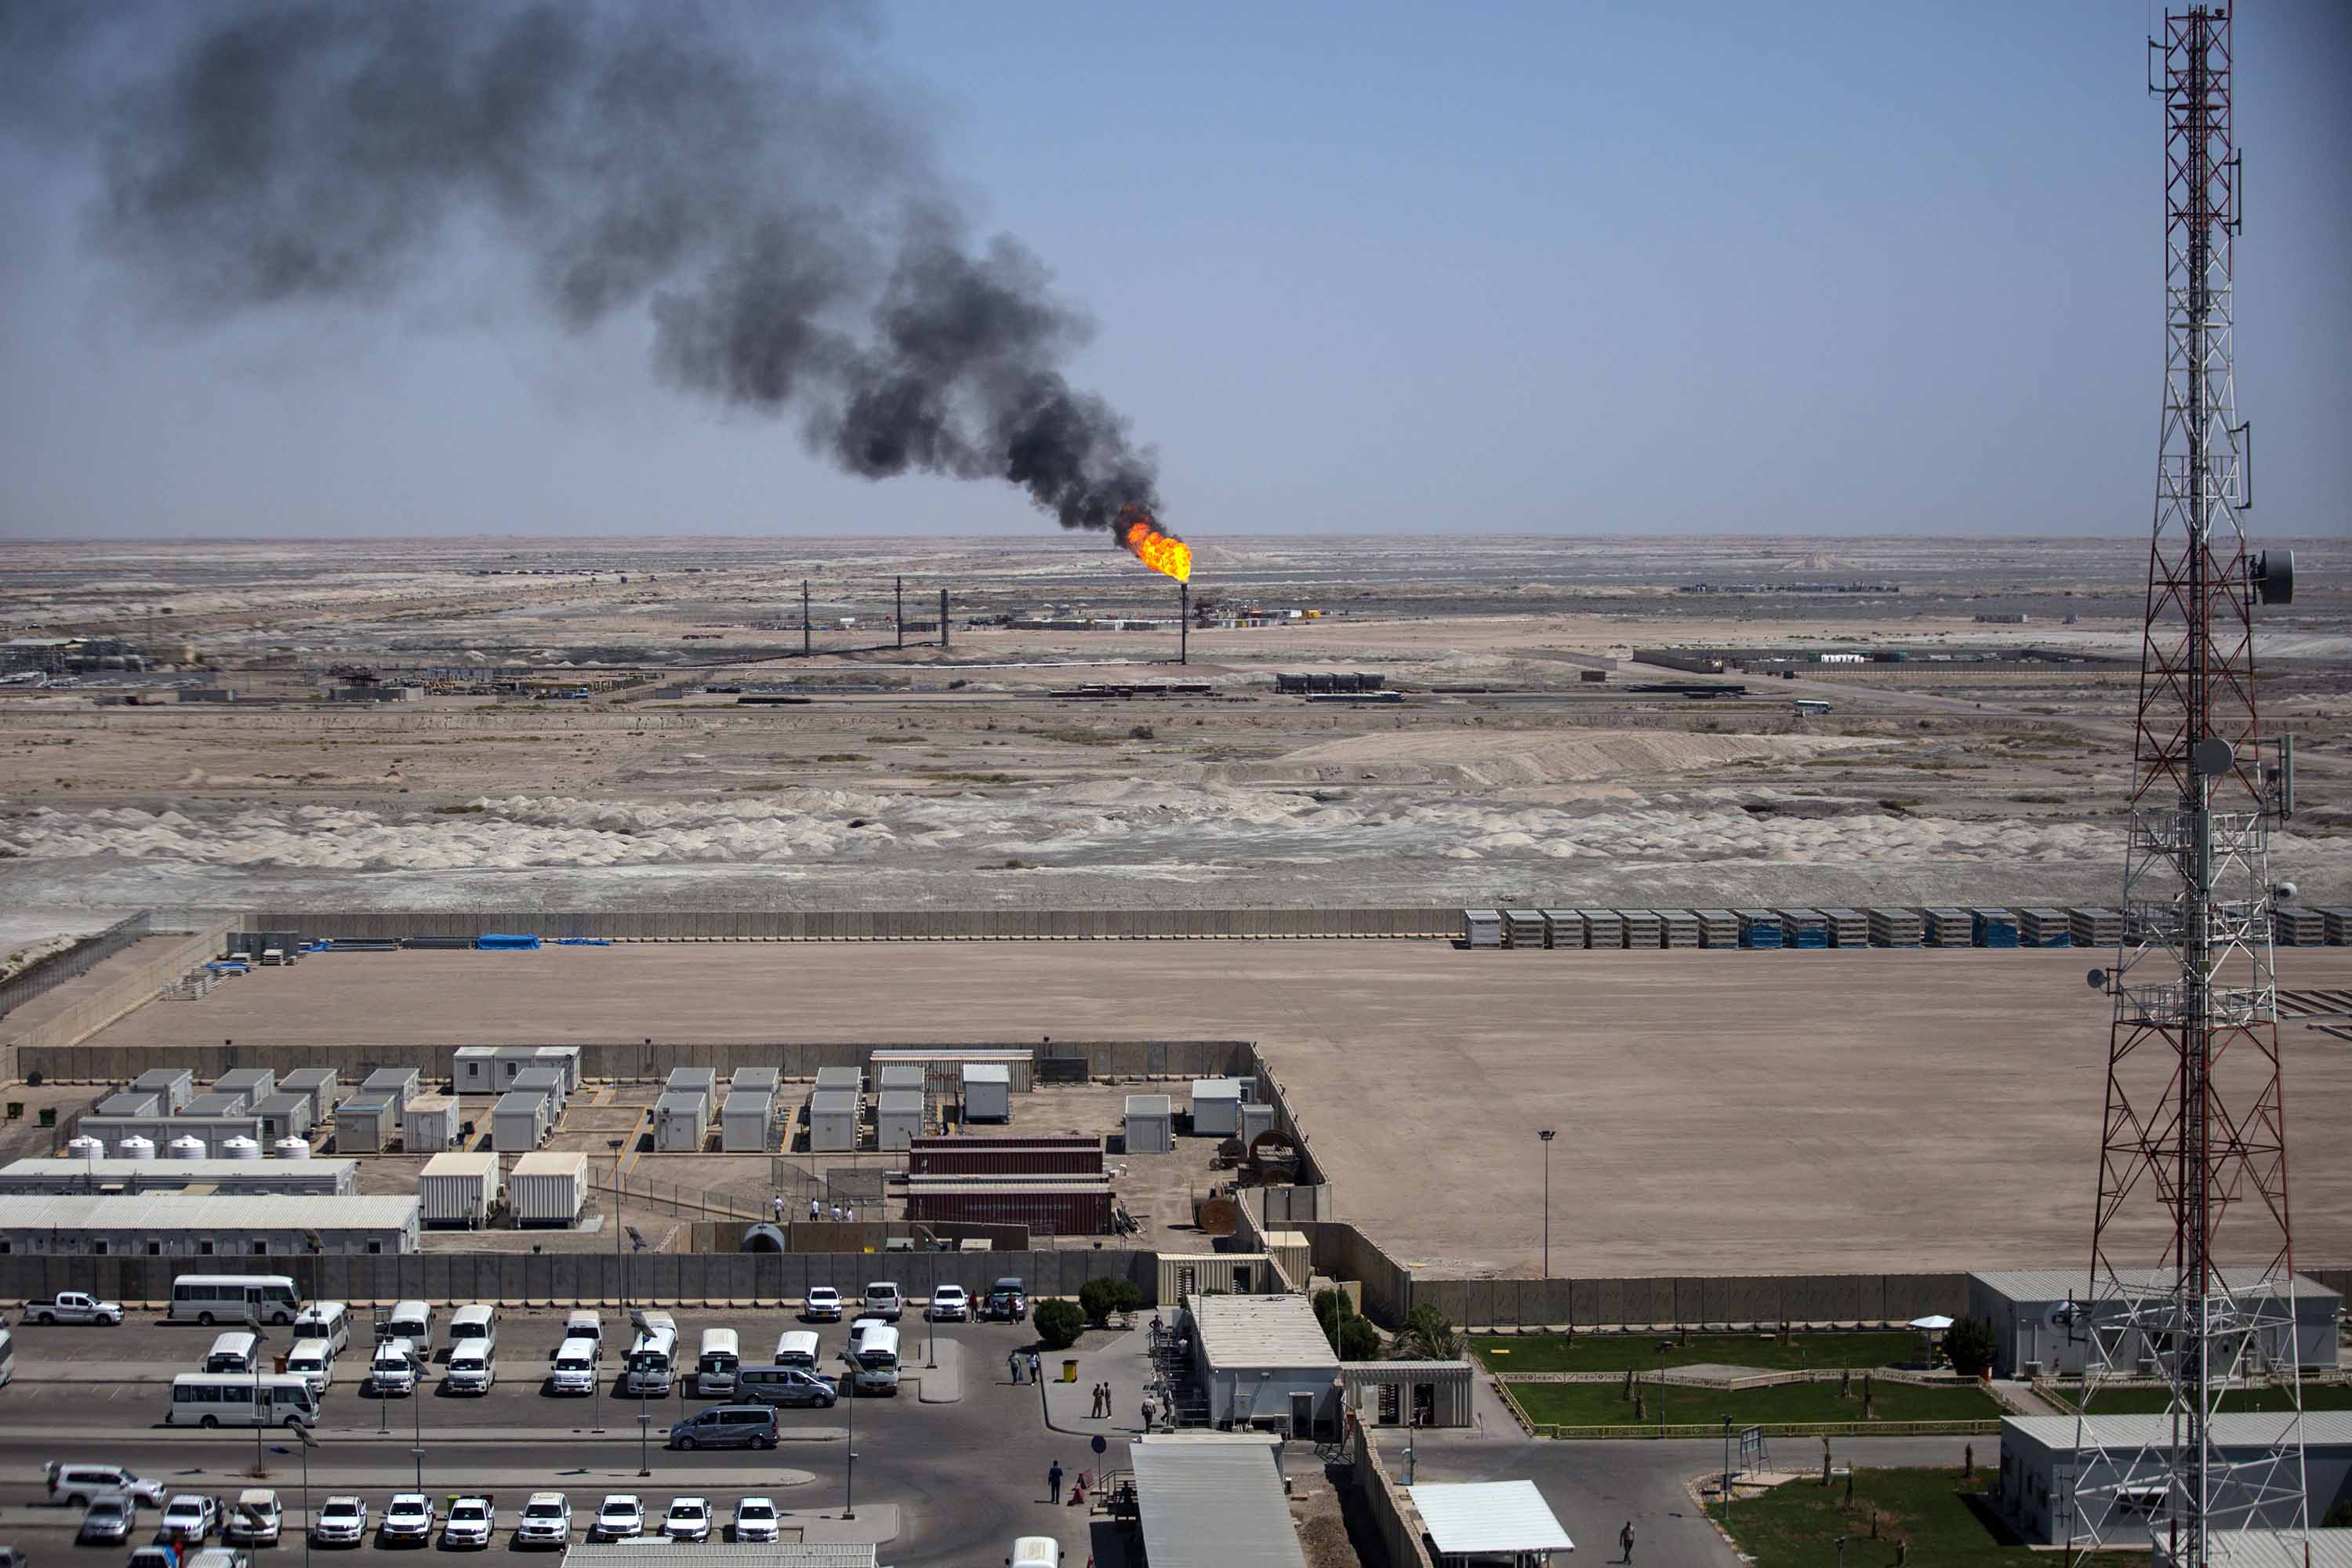 A picture taken on July 15, 2019 shows Iraq's Majnoon oil field, some 40 kilometers from the eastern border with Iran, north of the Iraqi city of Basra. Credit: Hussein Faleh/AFP via Getty Images